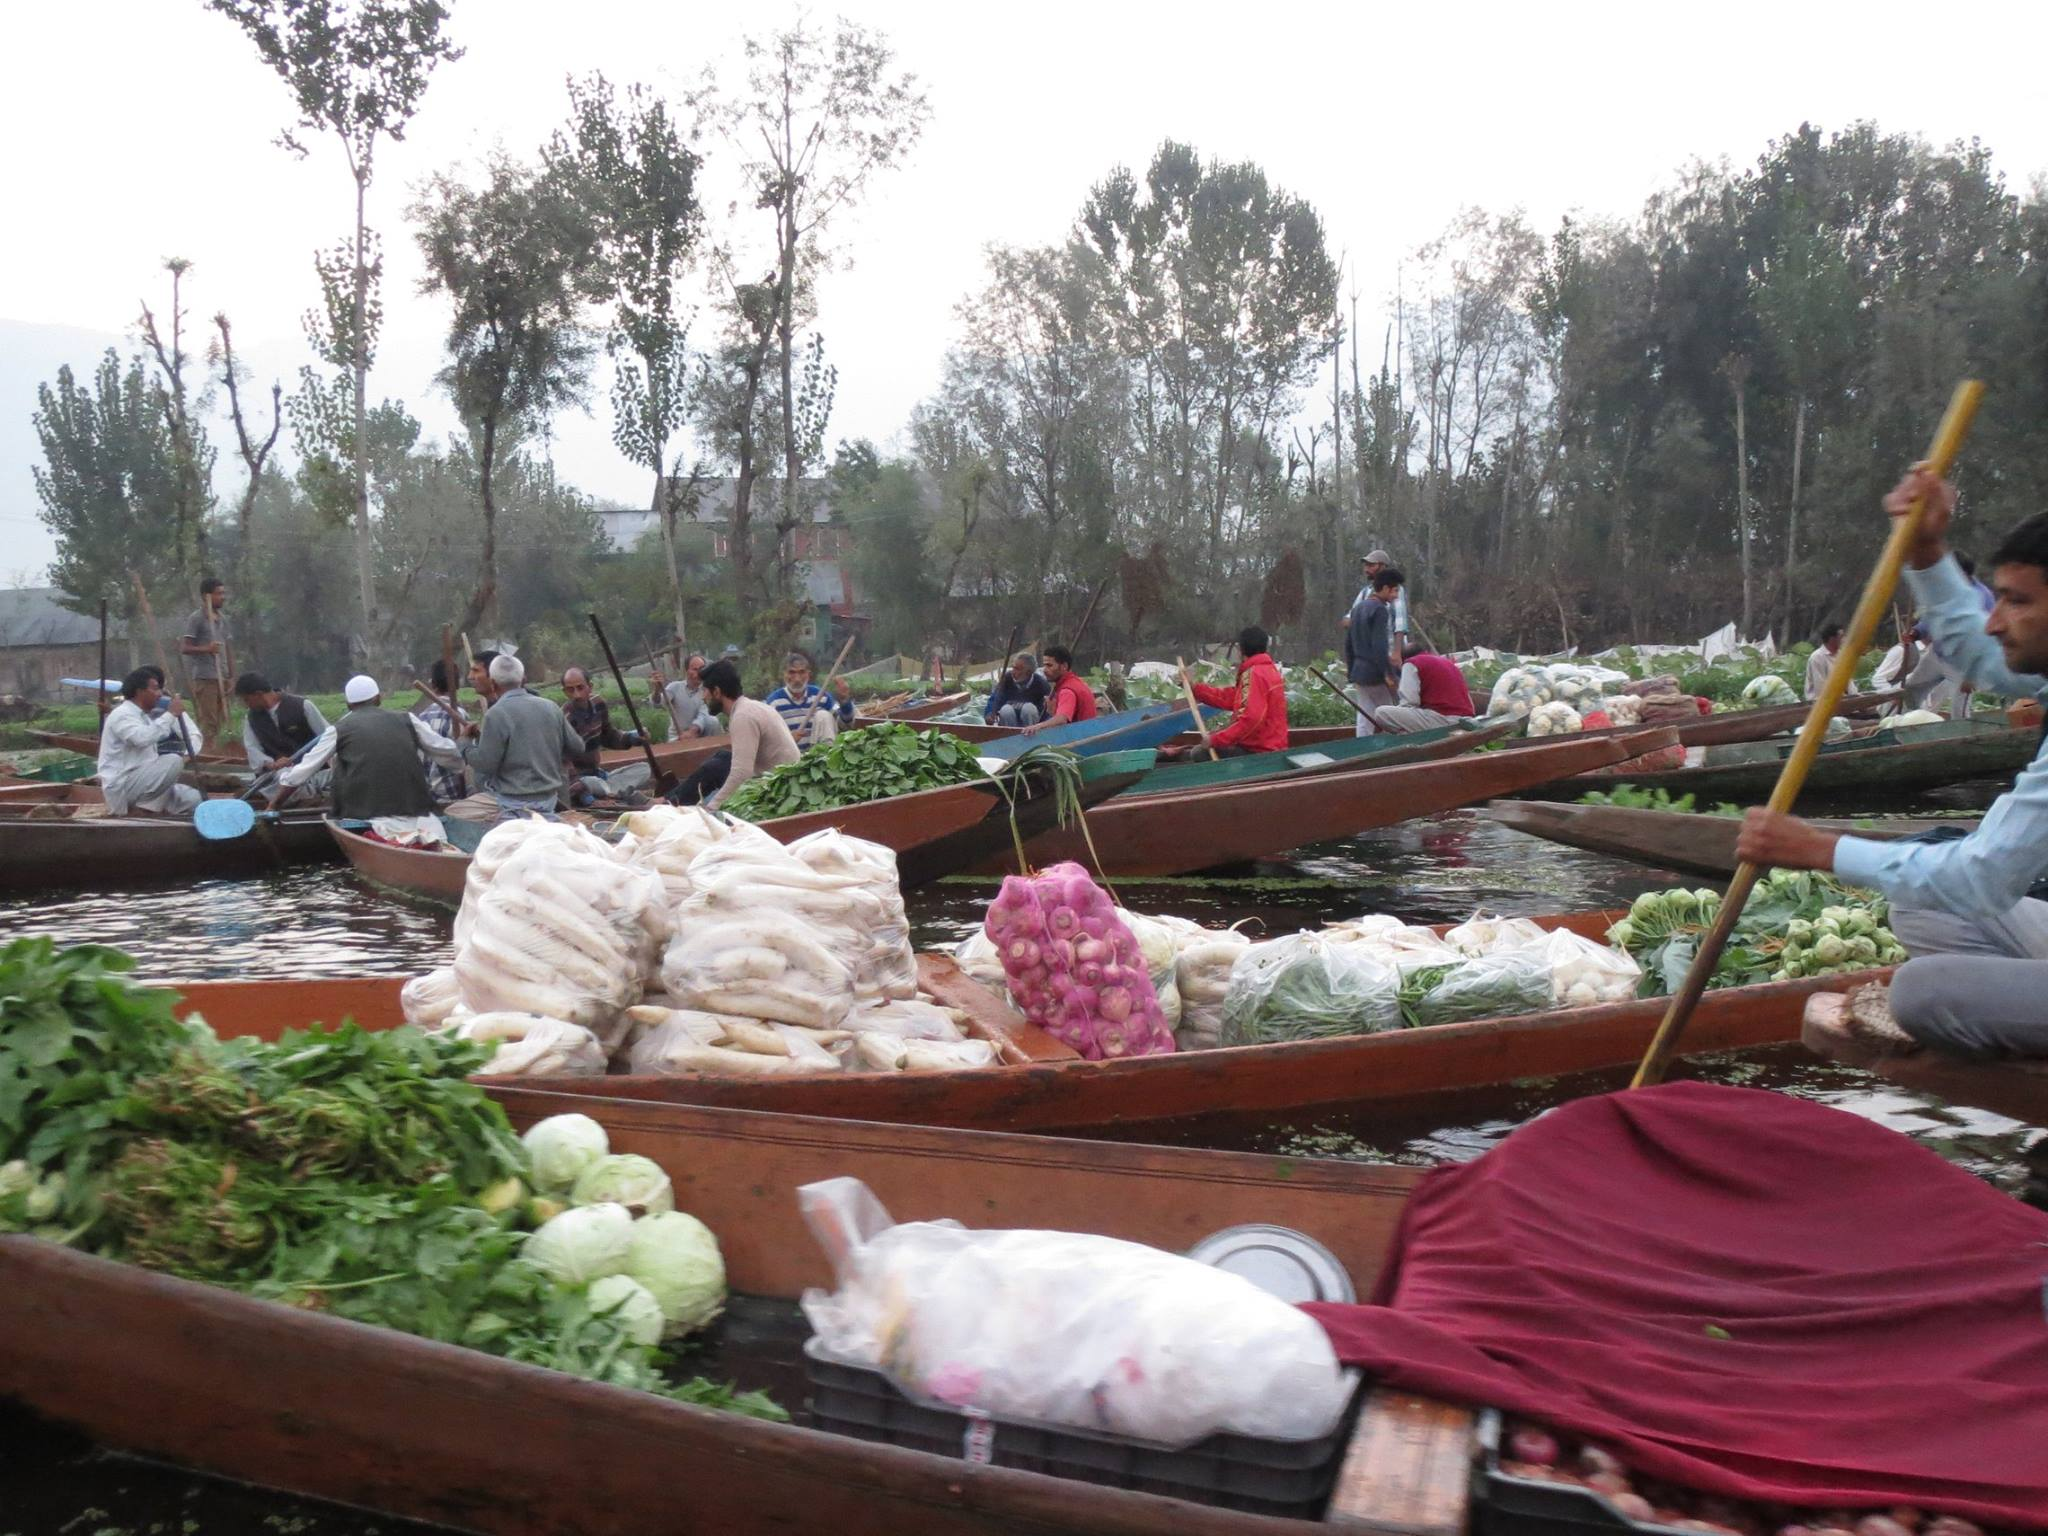 A boat transporting vegetables